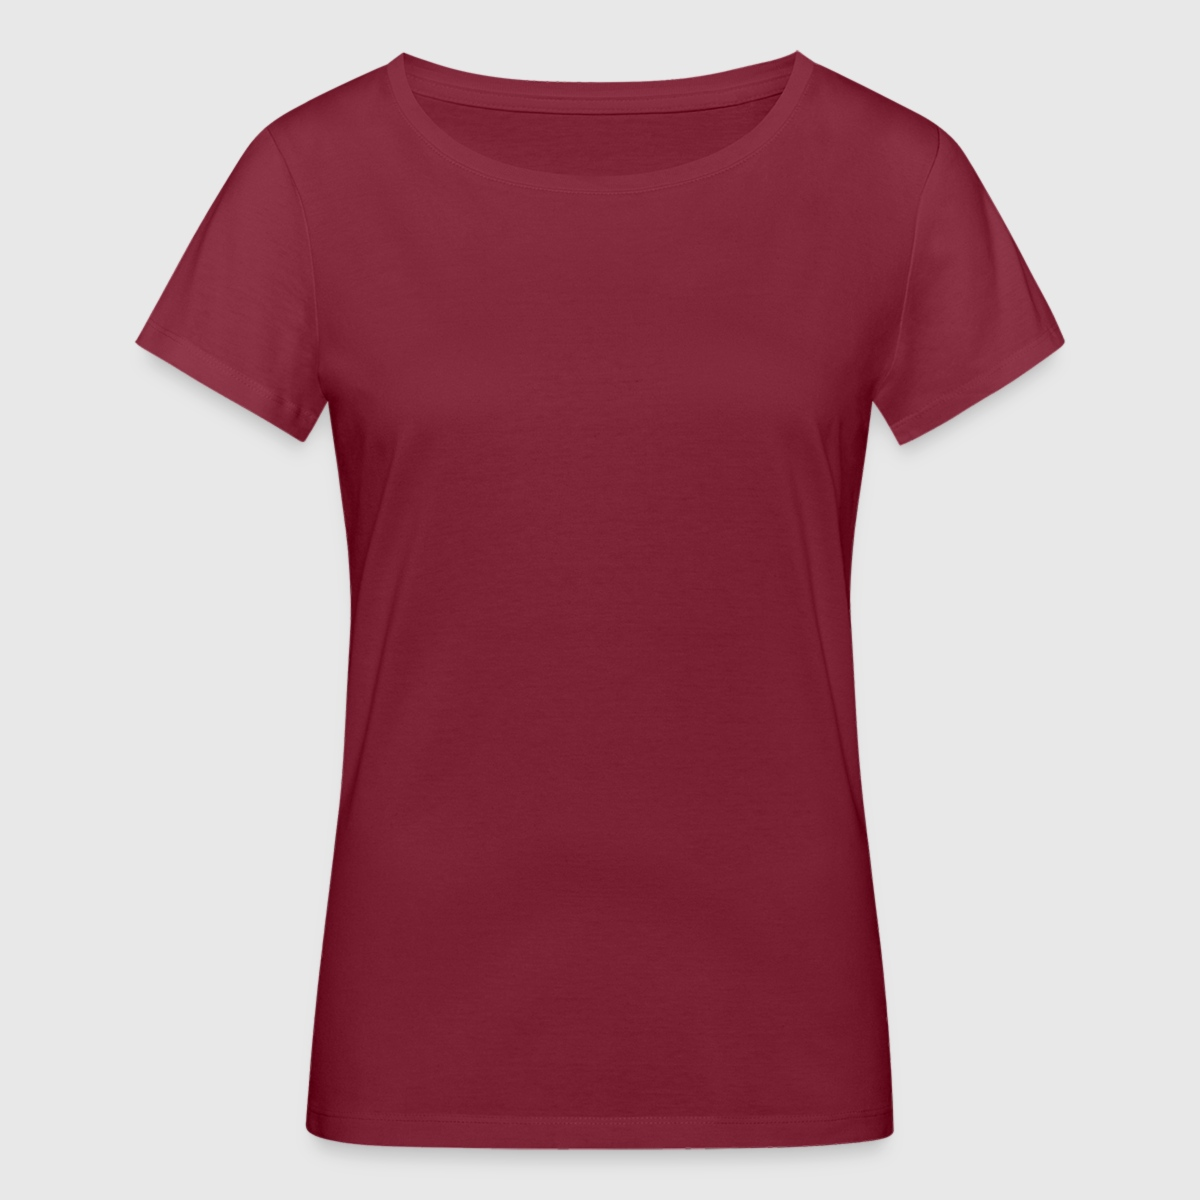 Women's Organic T-Shirt by Stanley & Stella - Front